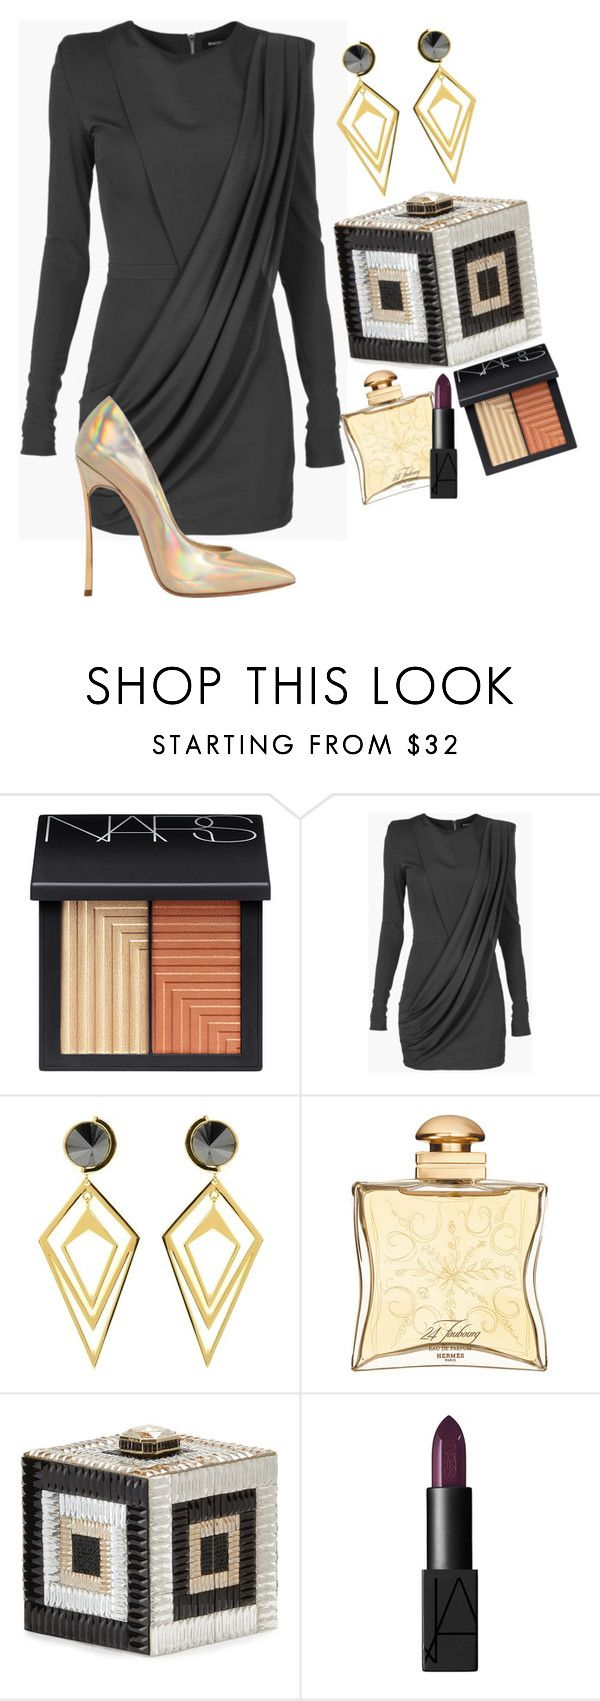 """Before You Go"" by chelsofly on Polyvore featuring NARS Cosmetics, Balmain, Sarah Magid, Hermès, Judith Leiber and Casadei"